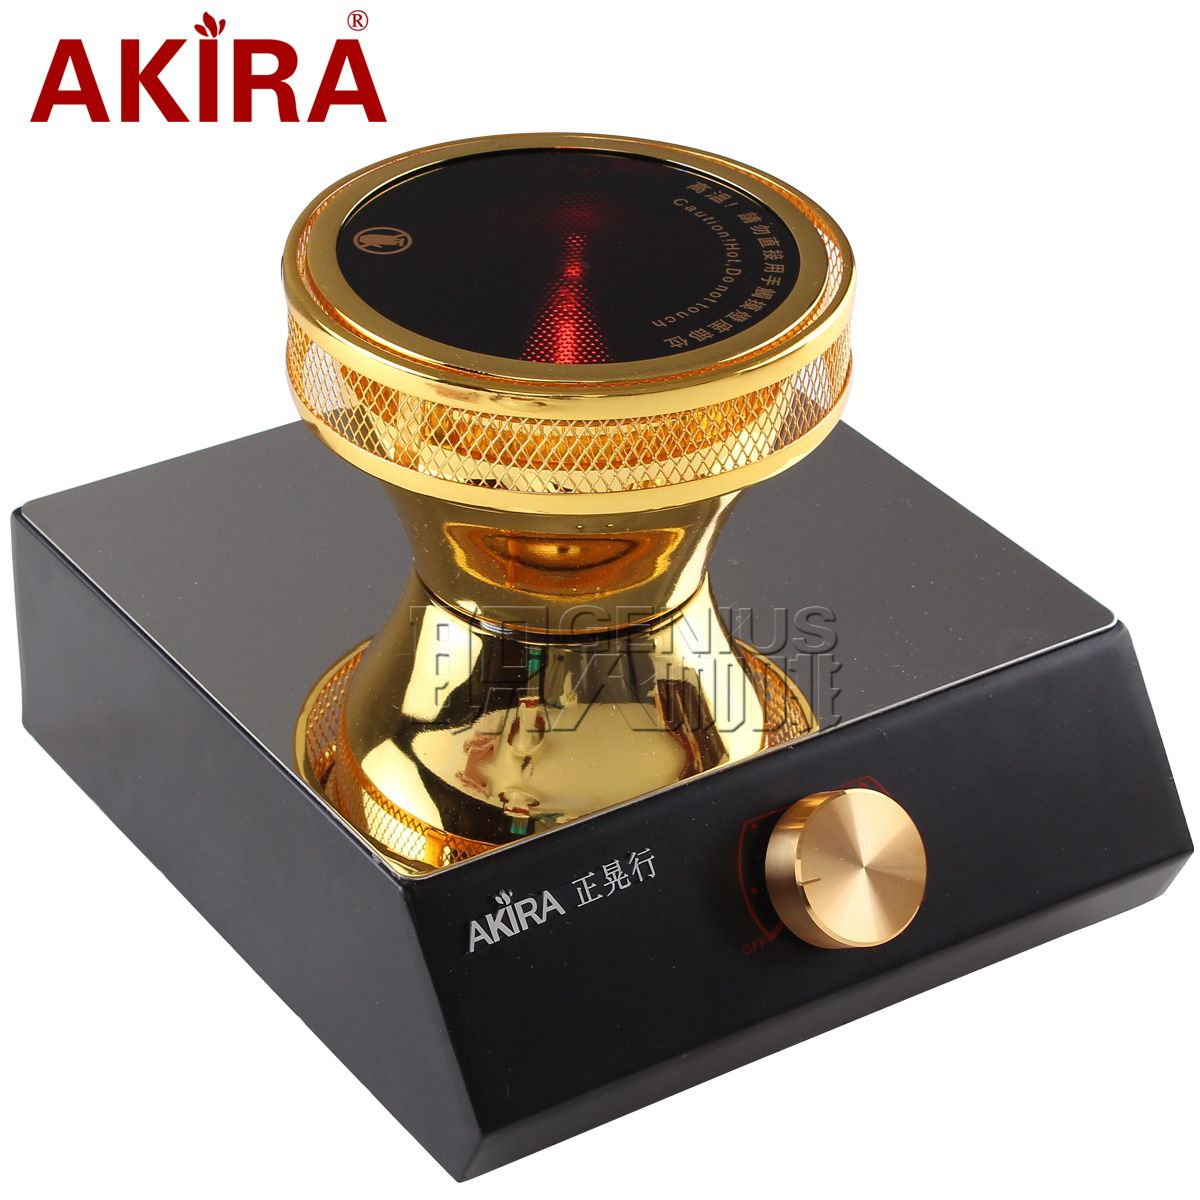 Coffee maker syphon gas stove akira coffee heated furnace heated device infrared halogen lamp US $181.28